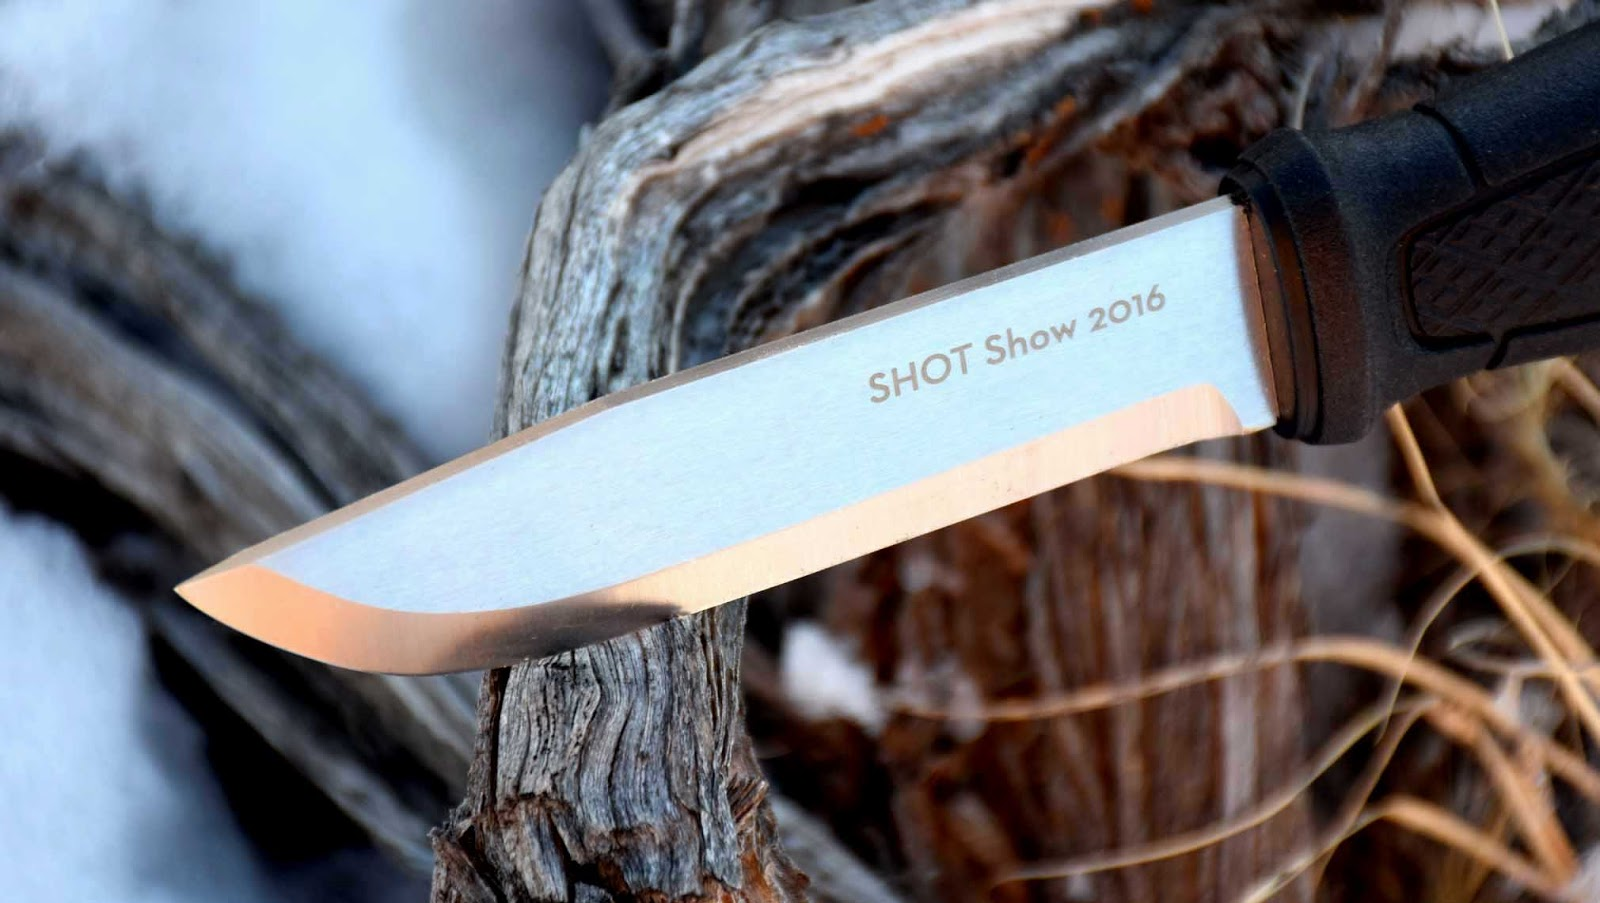 Rocky mountain bushcraft shot show 2014 first impression review -  Photo Credit Rocky Mountain Bushcraft 2016